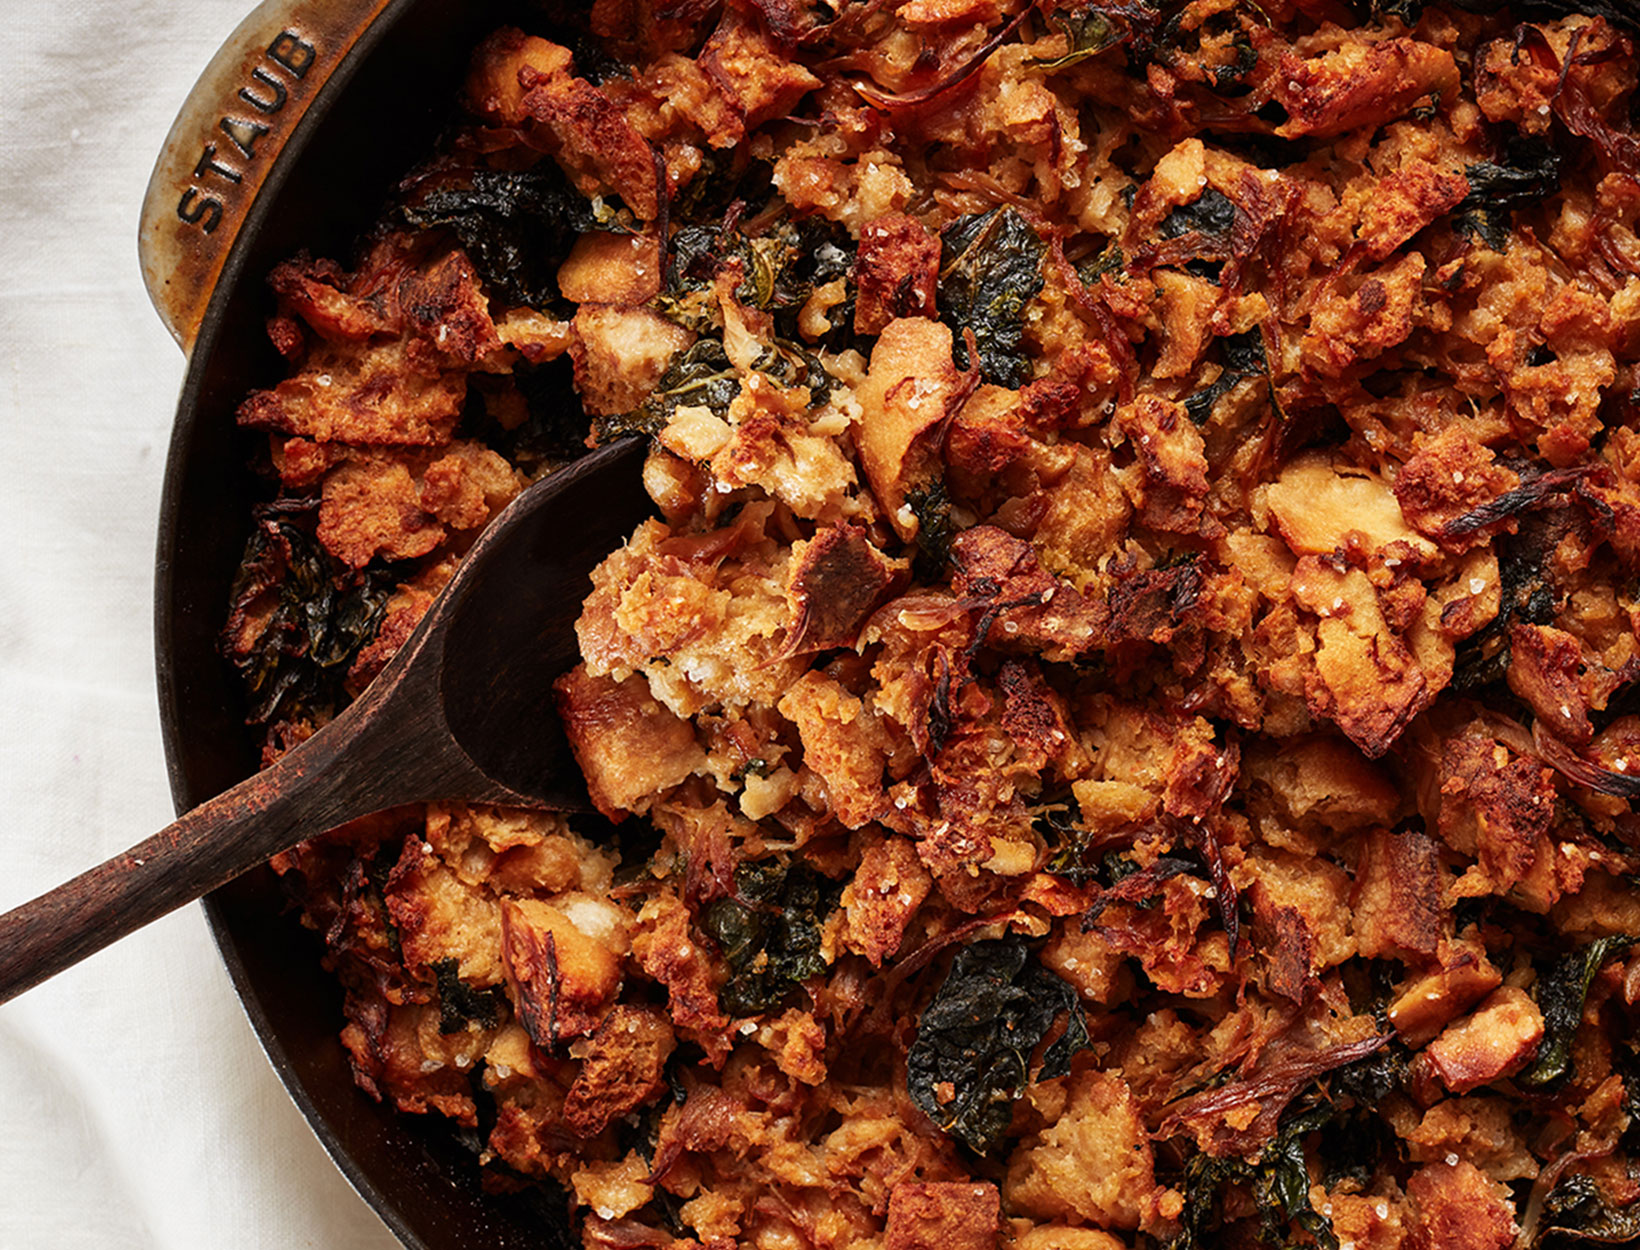 Stuffing with Caramelized Onions, Fennel, and Kale